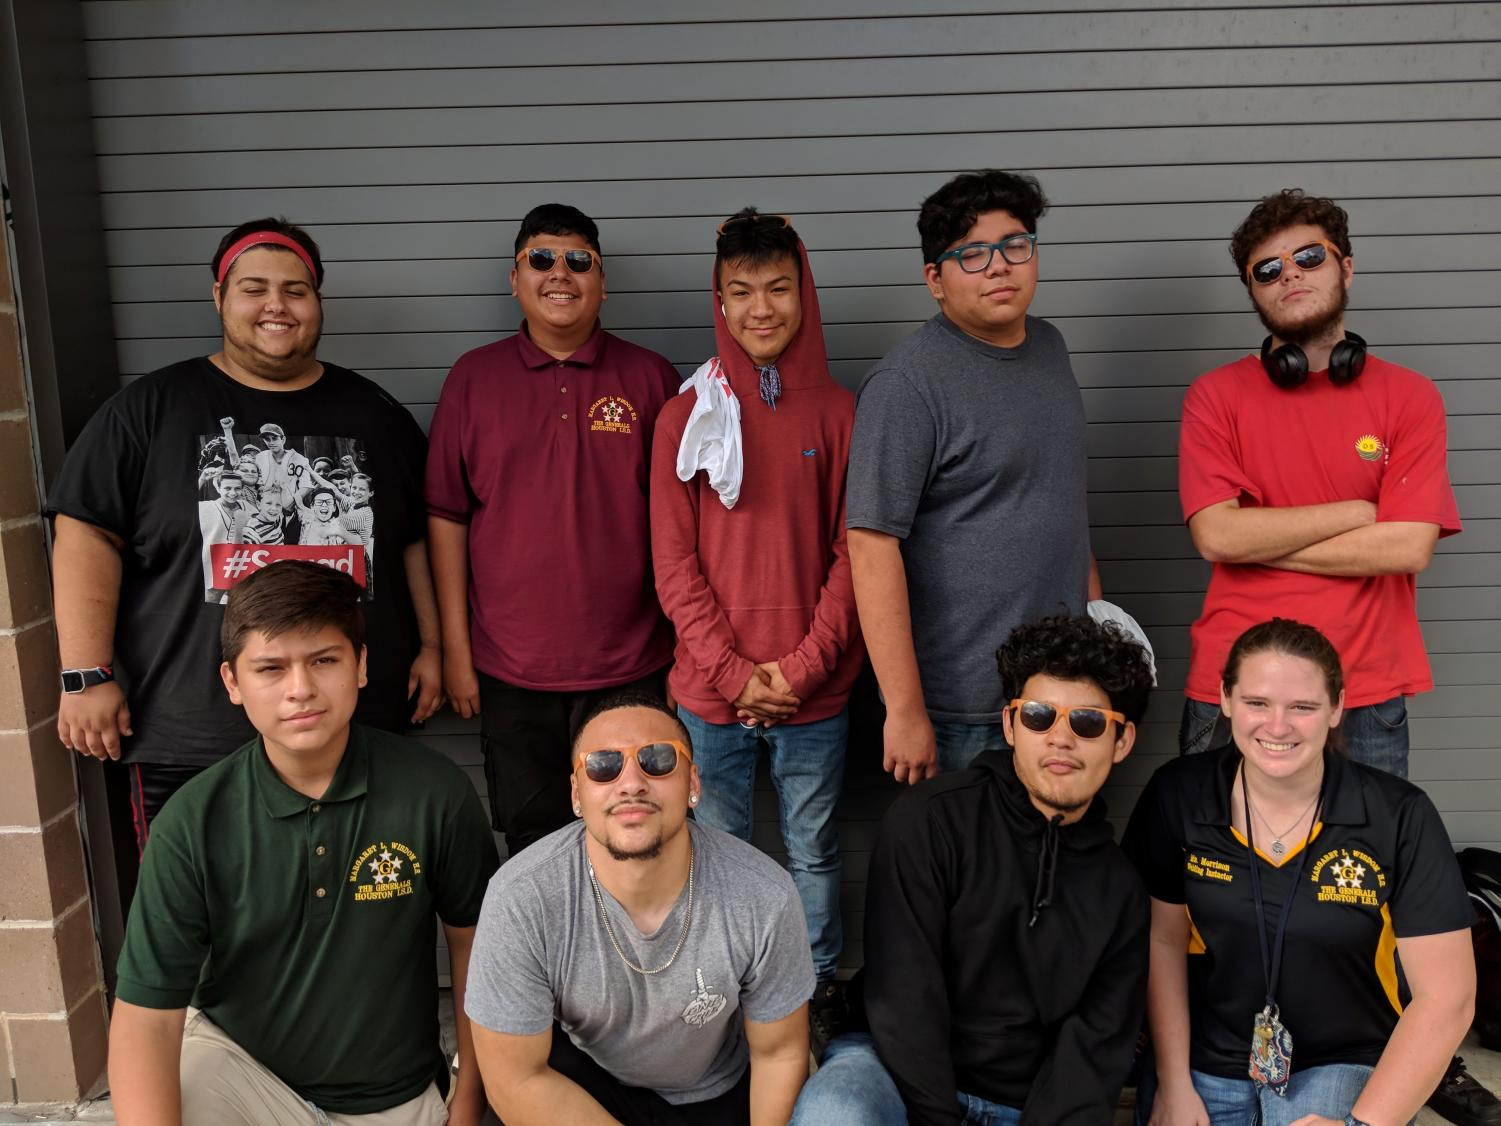 Members of the Wisdom HS Welding Team with Coach Brittney Morrison; Oct. 3, 2018